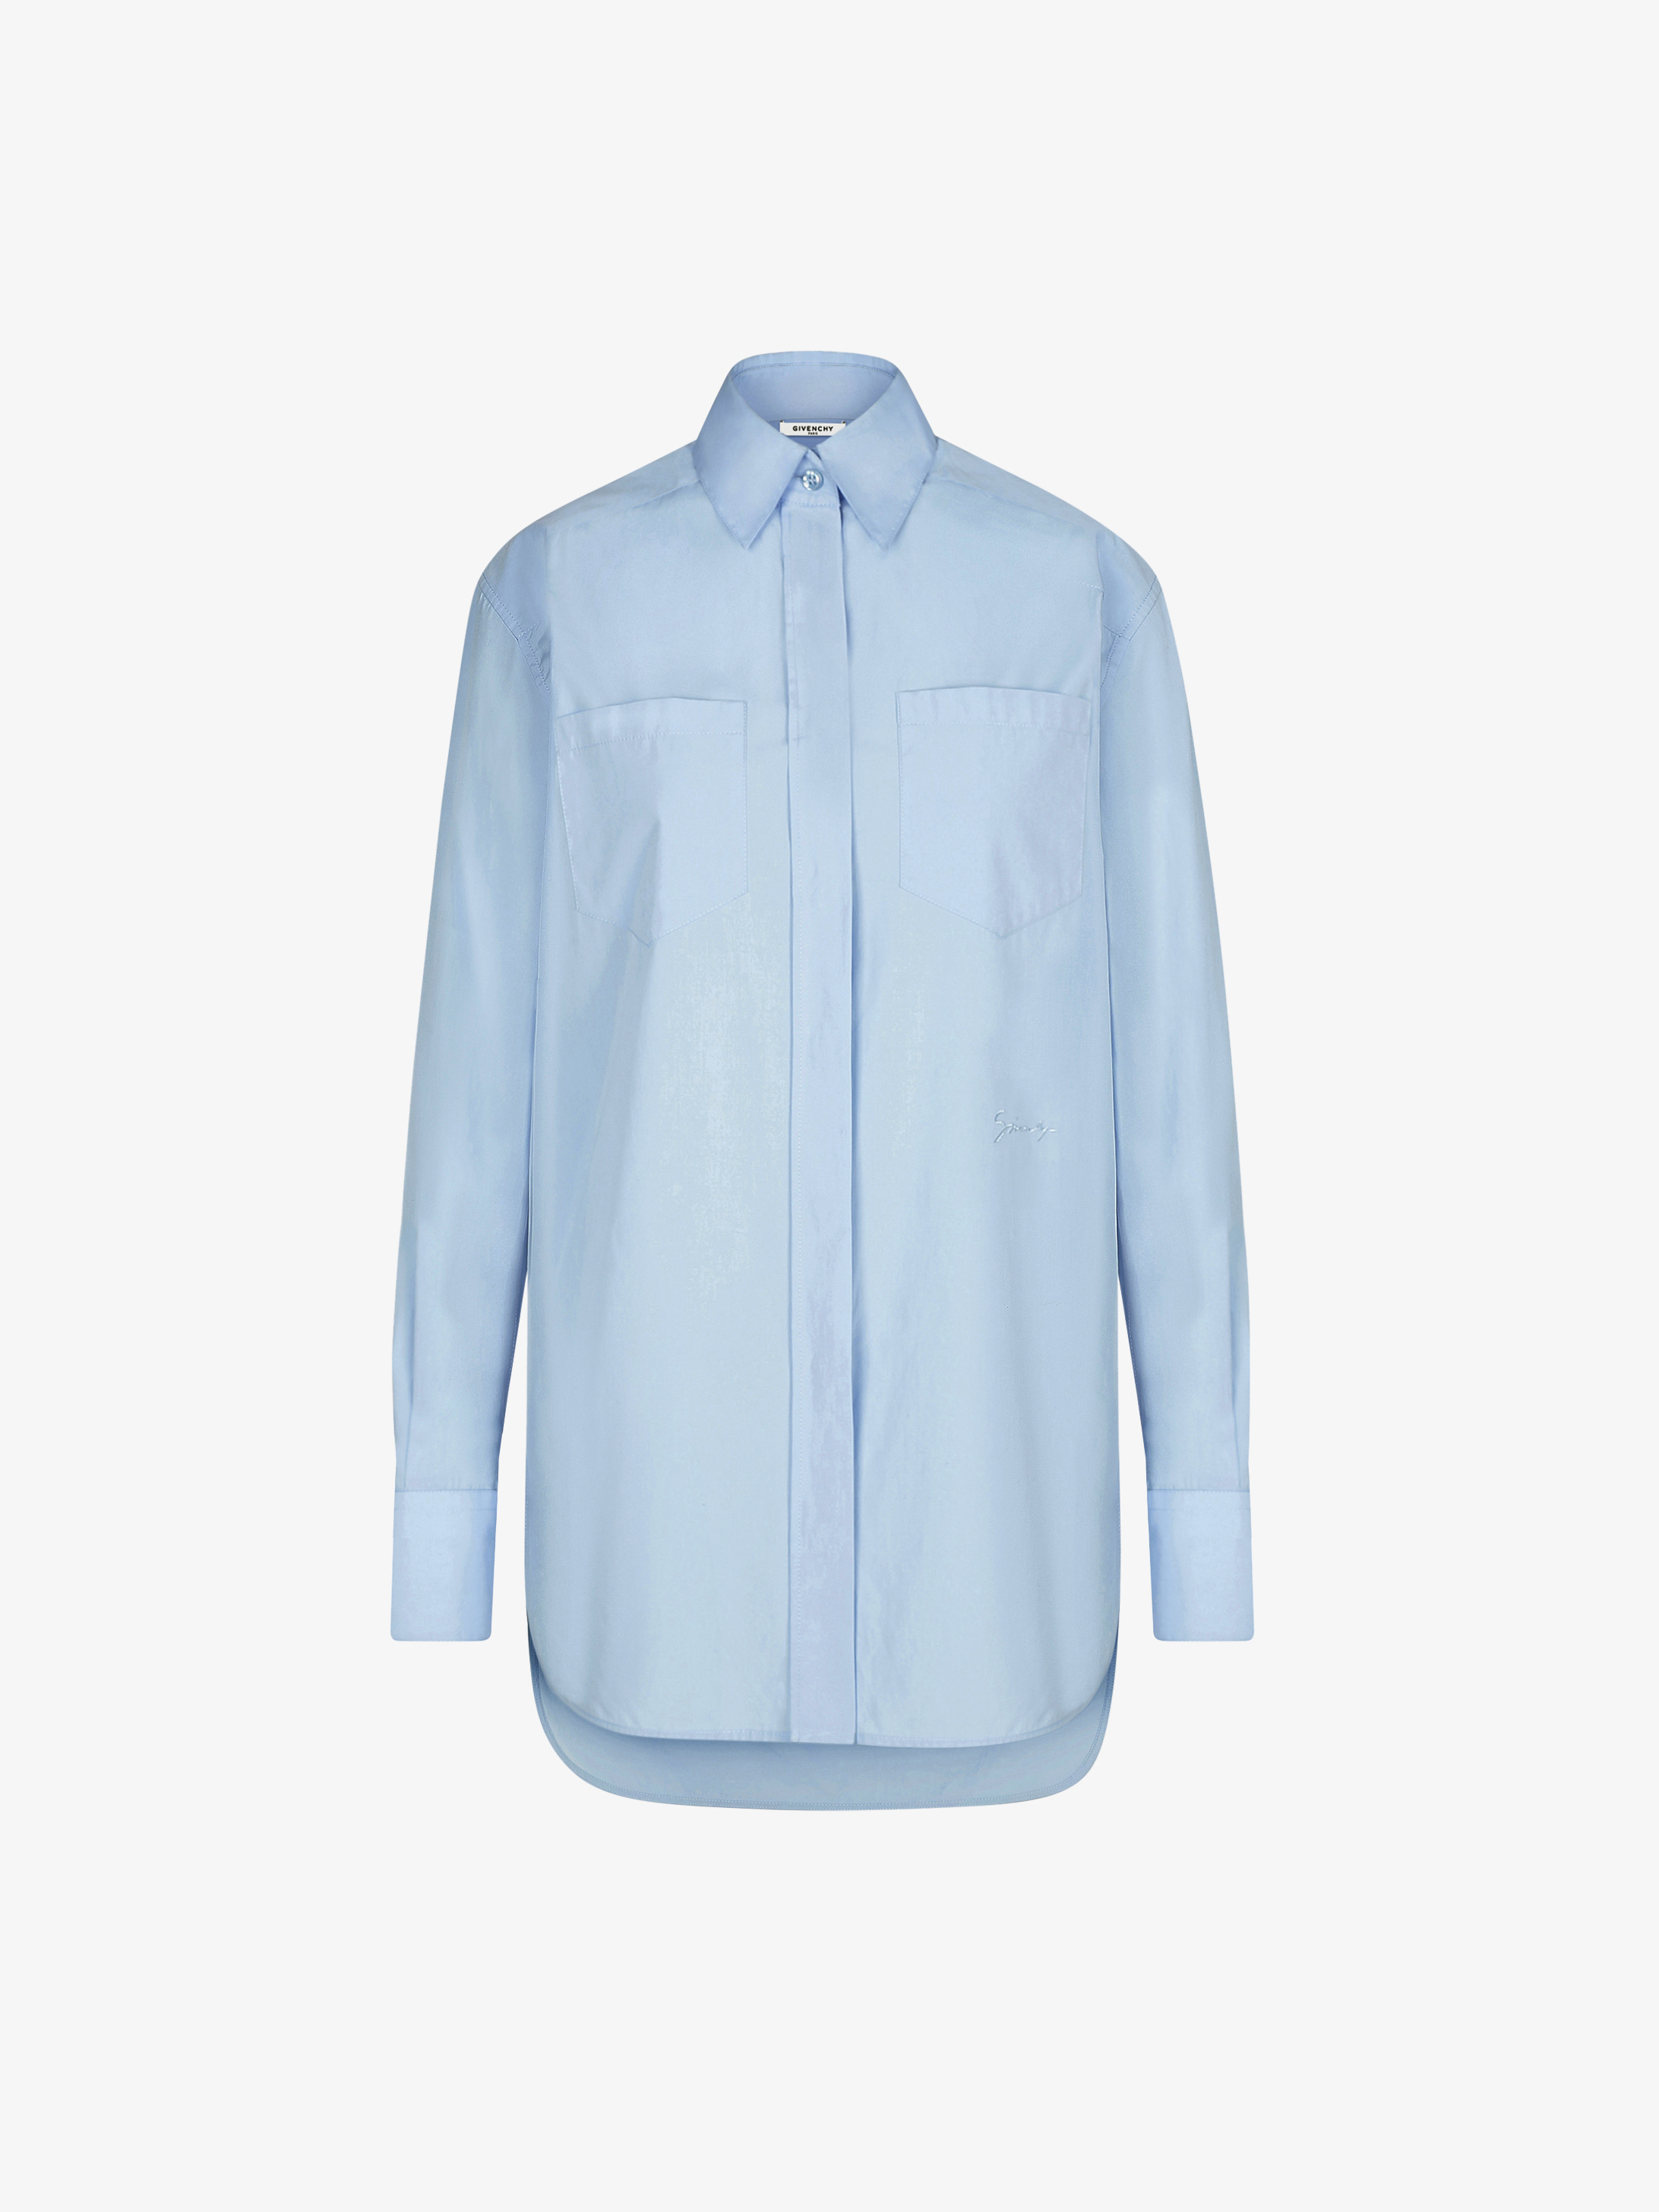 GIVENCHY signature embroidered shirt